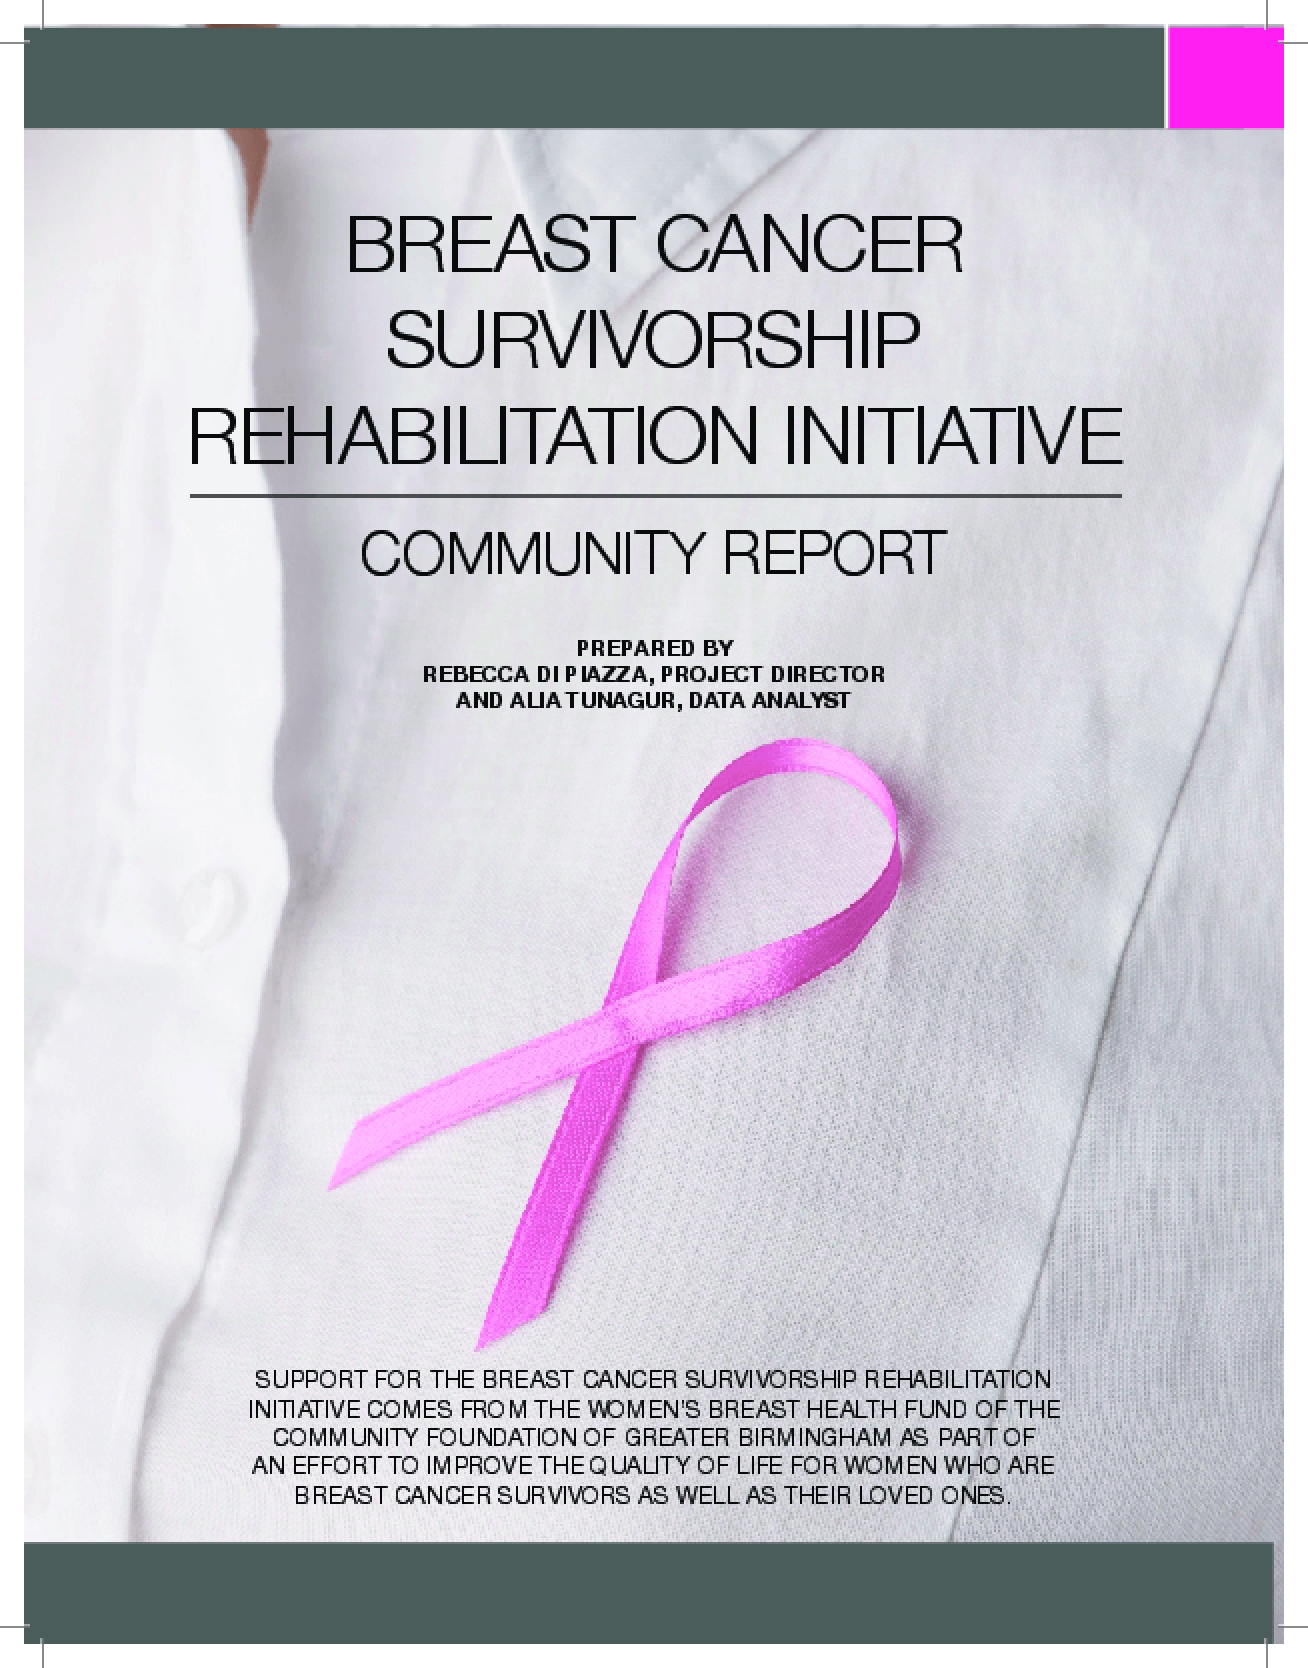 Breast Cancer Survivorship Rehabilitation Initiative: Community Report